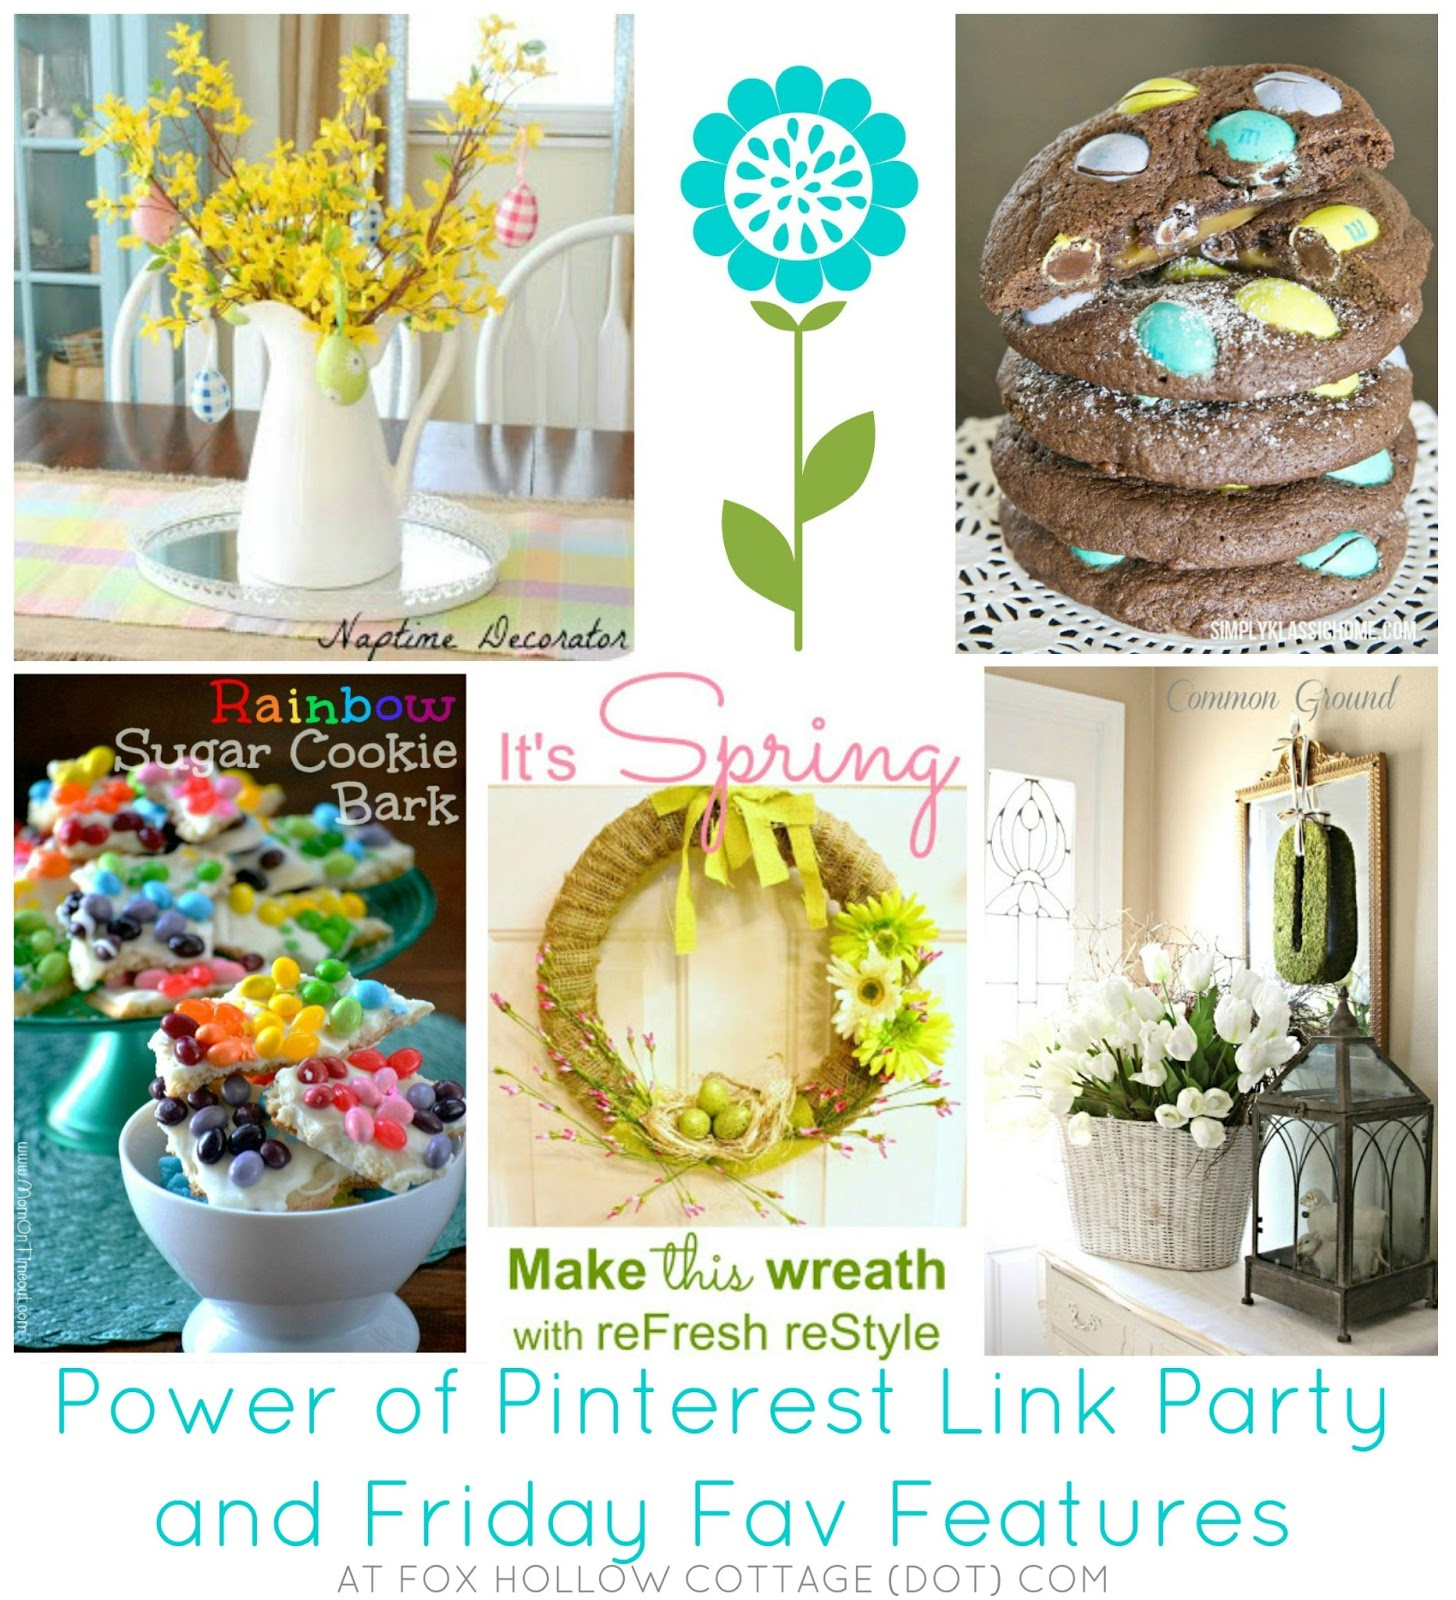 Spring Design Ideas: Power Of Pinterest Link Party (and Friday Fav Features